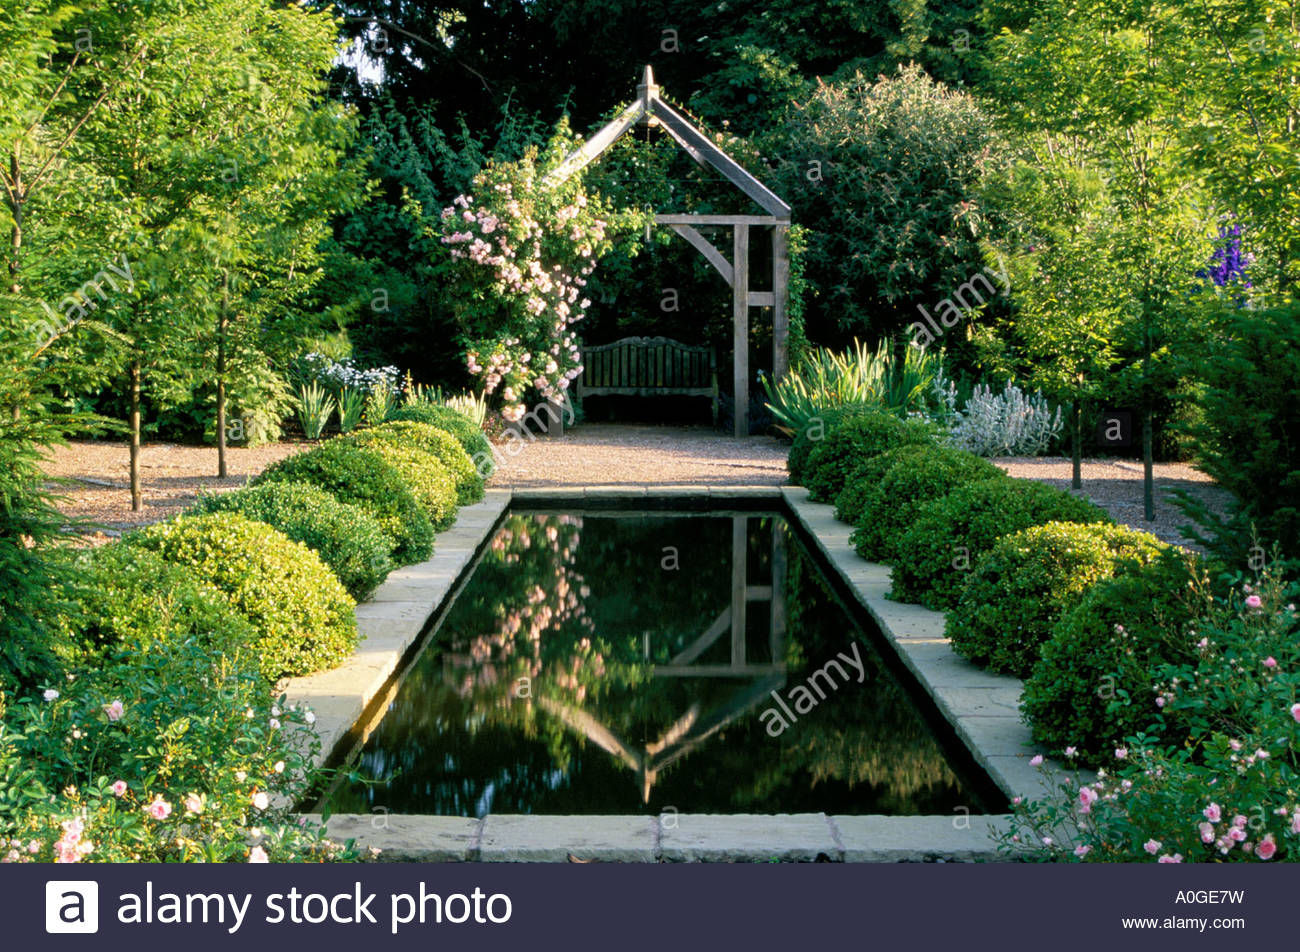 Lovely Stock Photo   Wollerton Old Hall Shropshire Formal Rectangular Reflective  Pond In Sunken Garden View Through To Rose Arbor And Seat